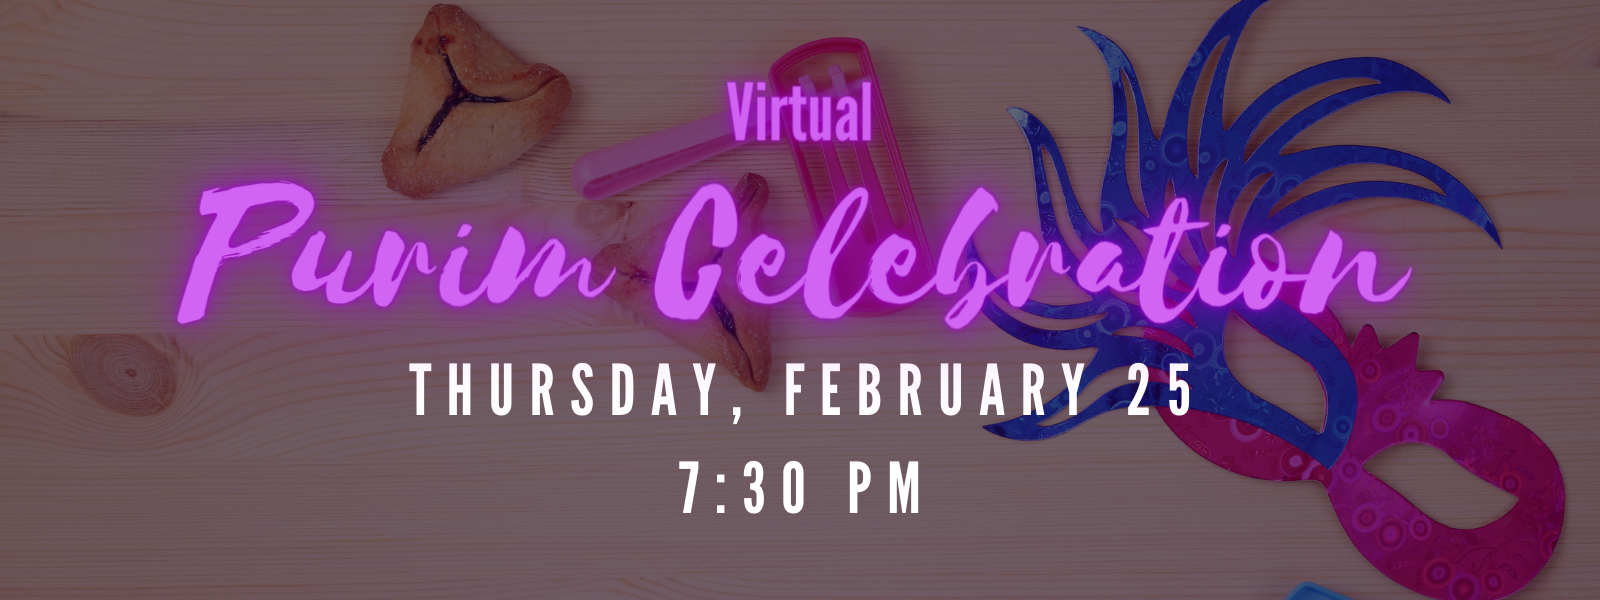 """<span class=""""slider_title"""">                                     BT's Virtual Purim Celebration                                </span>                                                                                                                                                                                       <span class=""""slider_description"""">Join the fun!  Check your email for the Zoom Room information.</span>"""